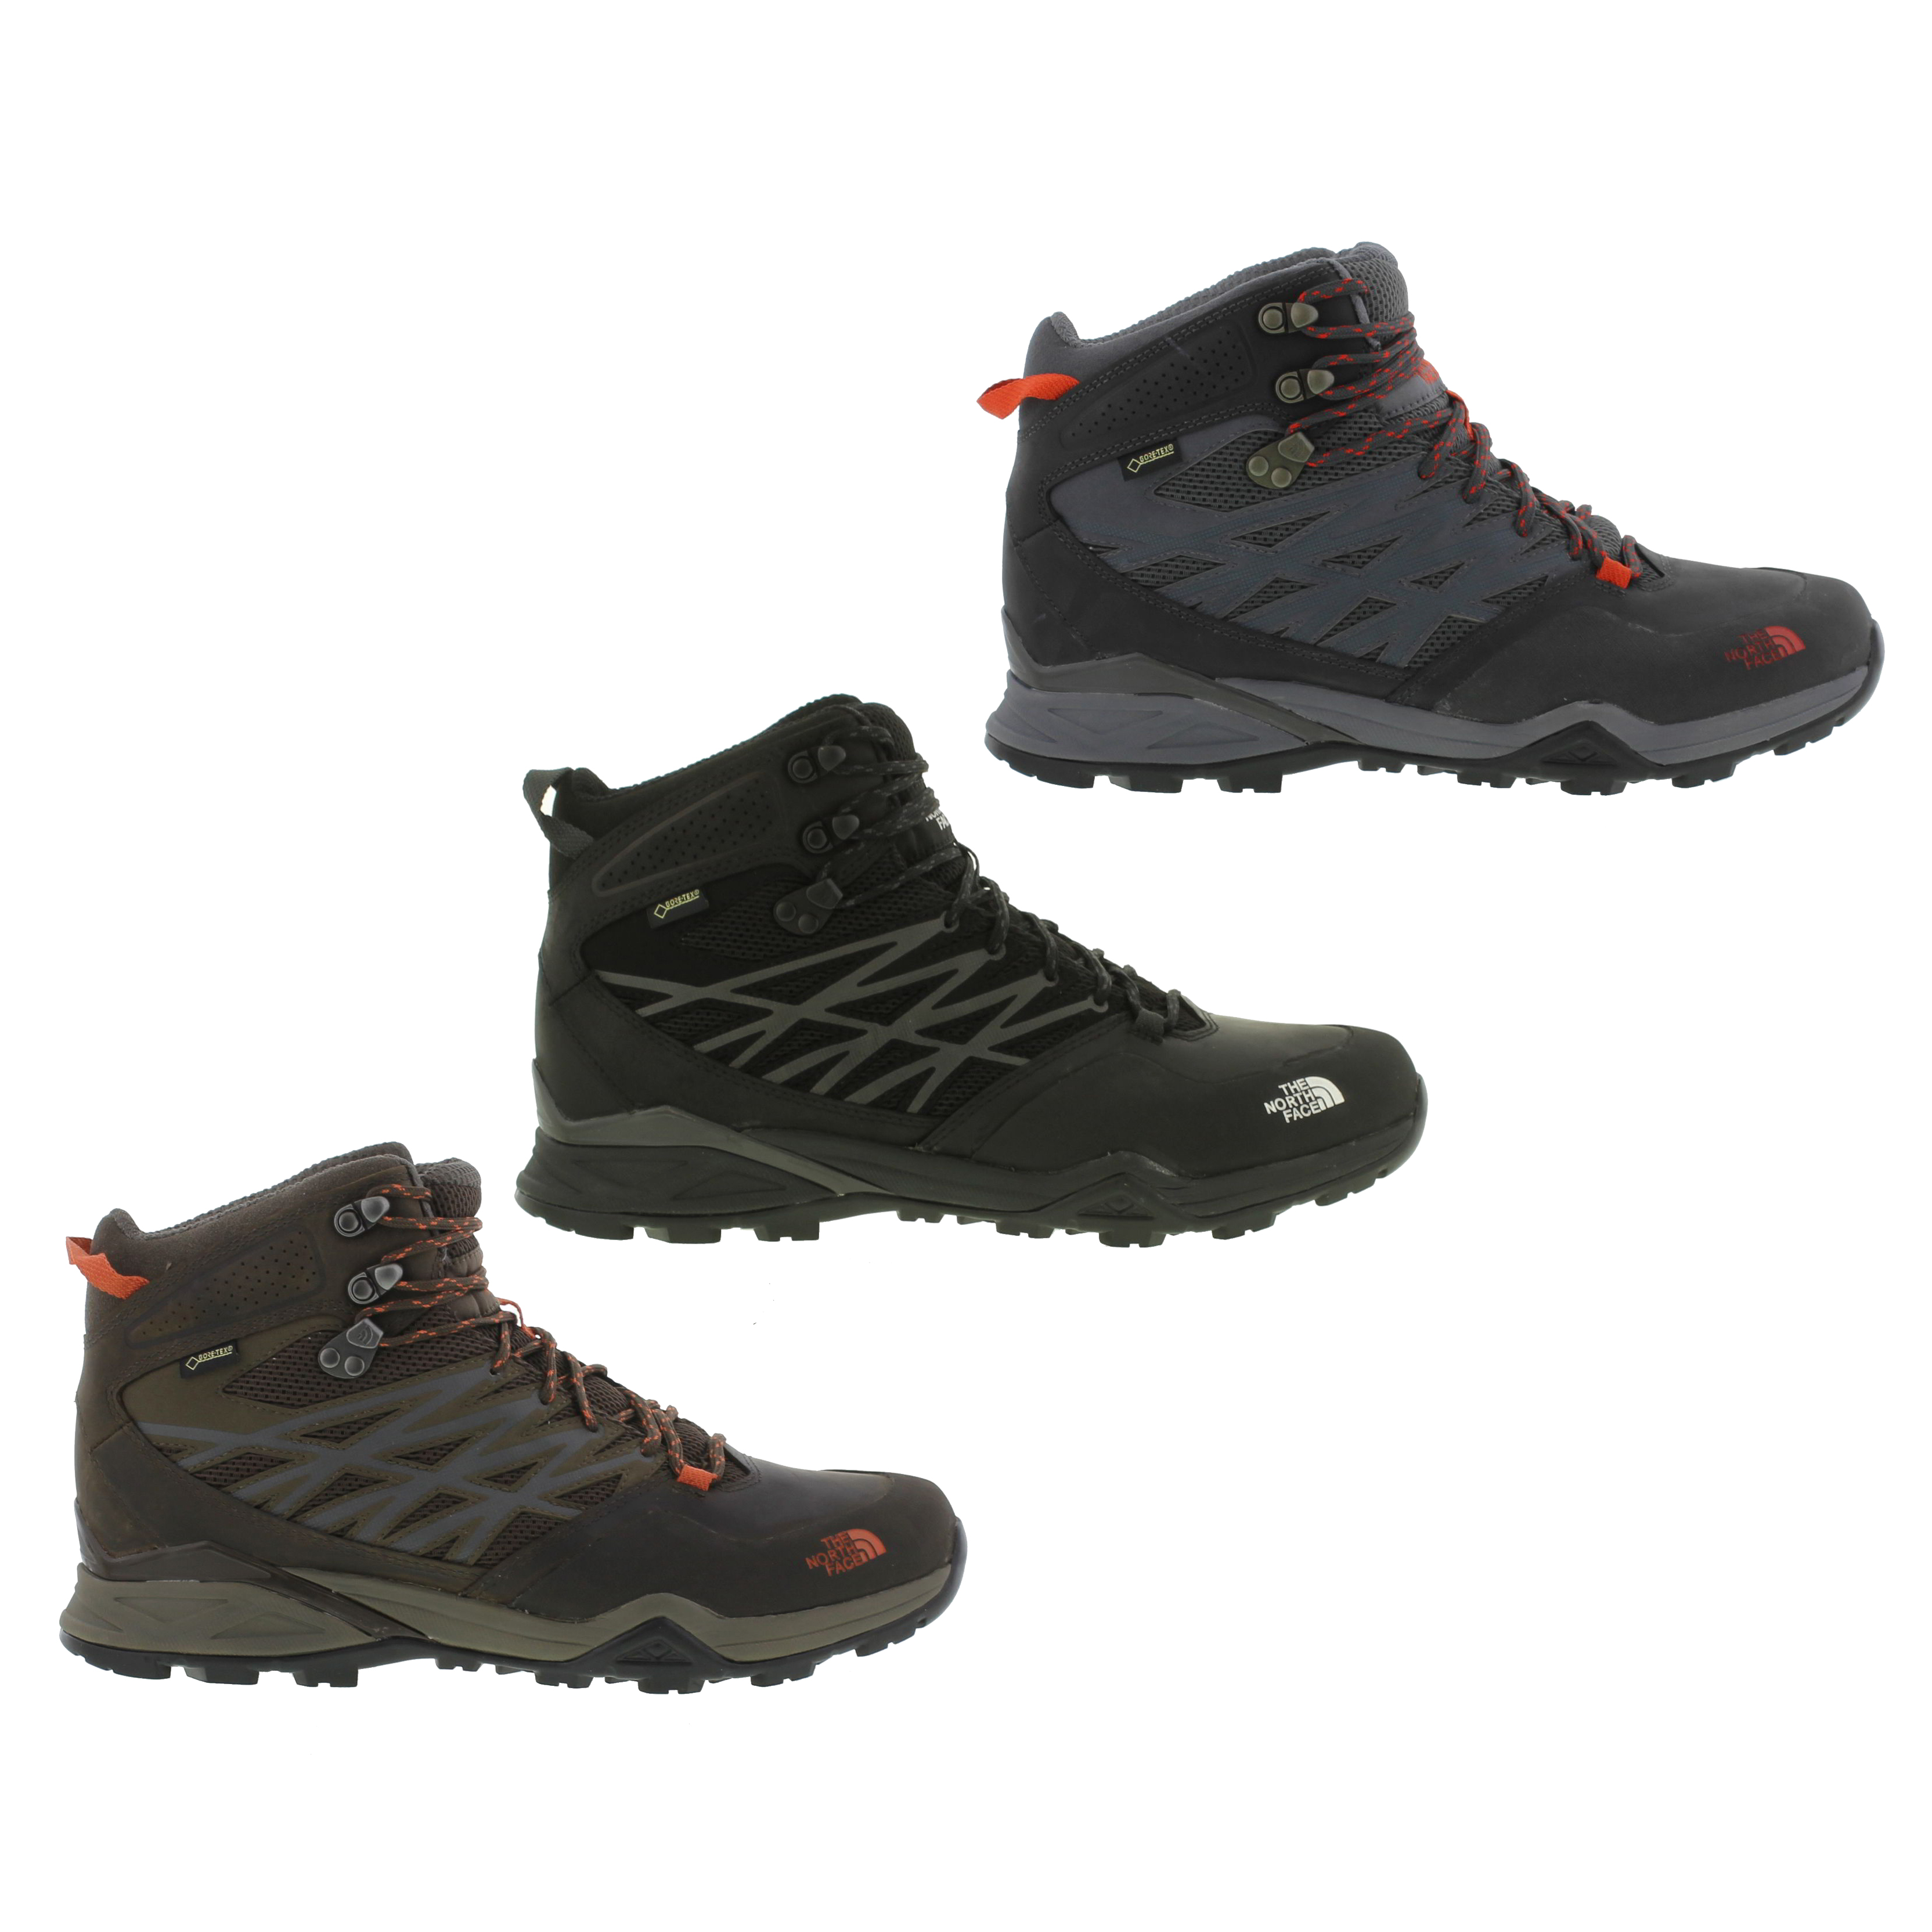 e0a41c82284 Details about North Face Hedgehog Hike Mid GTX Mens Waterproof Gortex  Walking Boots Size 7-11